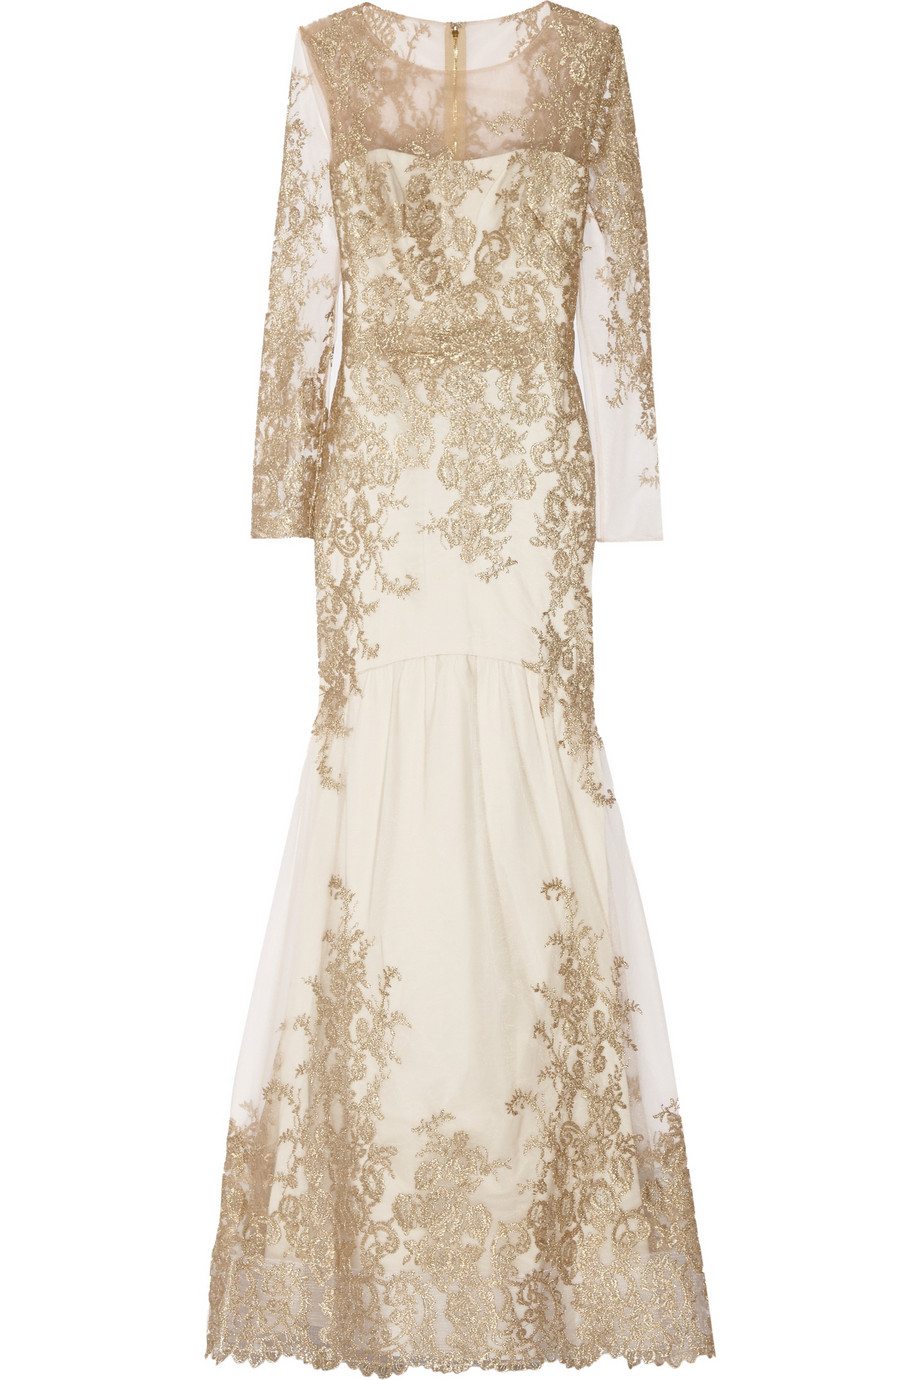 Lyst notte by marchesa embroidered tulle gown in metallic